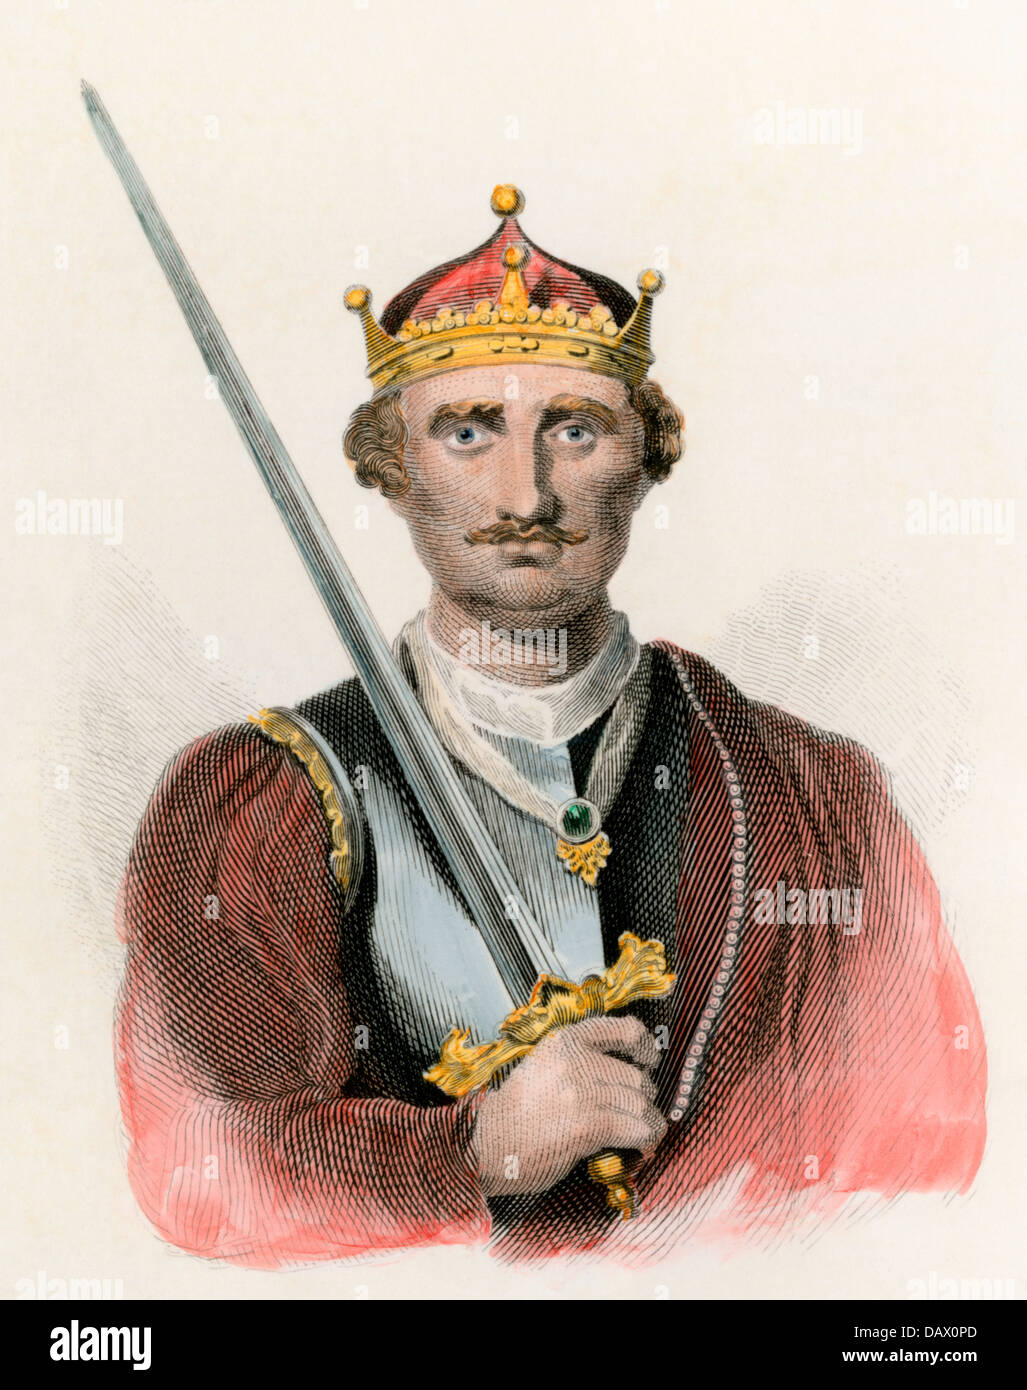 King of England William I, the Conqueror, carrying a sword. Hand-colored engraving - Stock Image